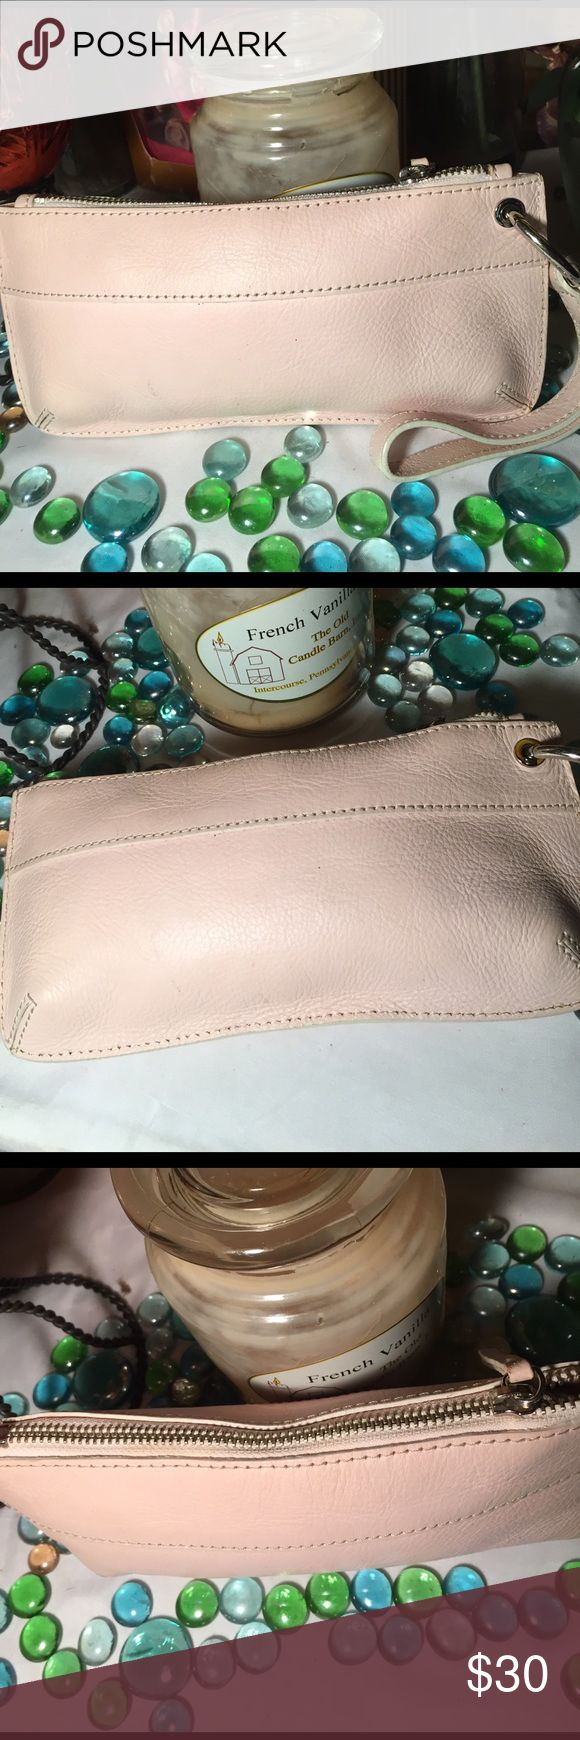 Banana Republic Wristlet Sz 5x9- Genuine leather- Good condition- Some cosmetic stains inside interior- Sift pink- Very nice. Banana Republic Bags Clutches & Wristlets